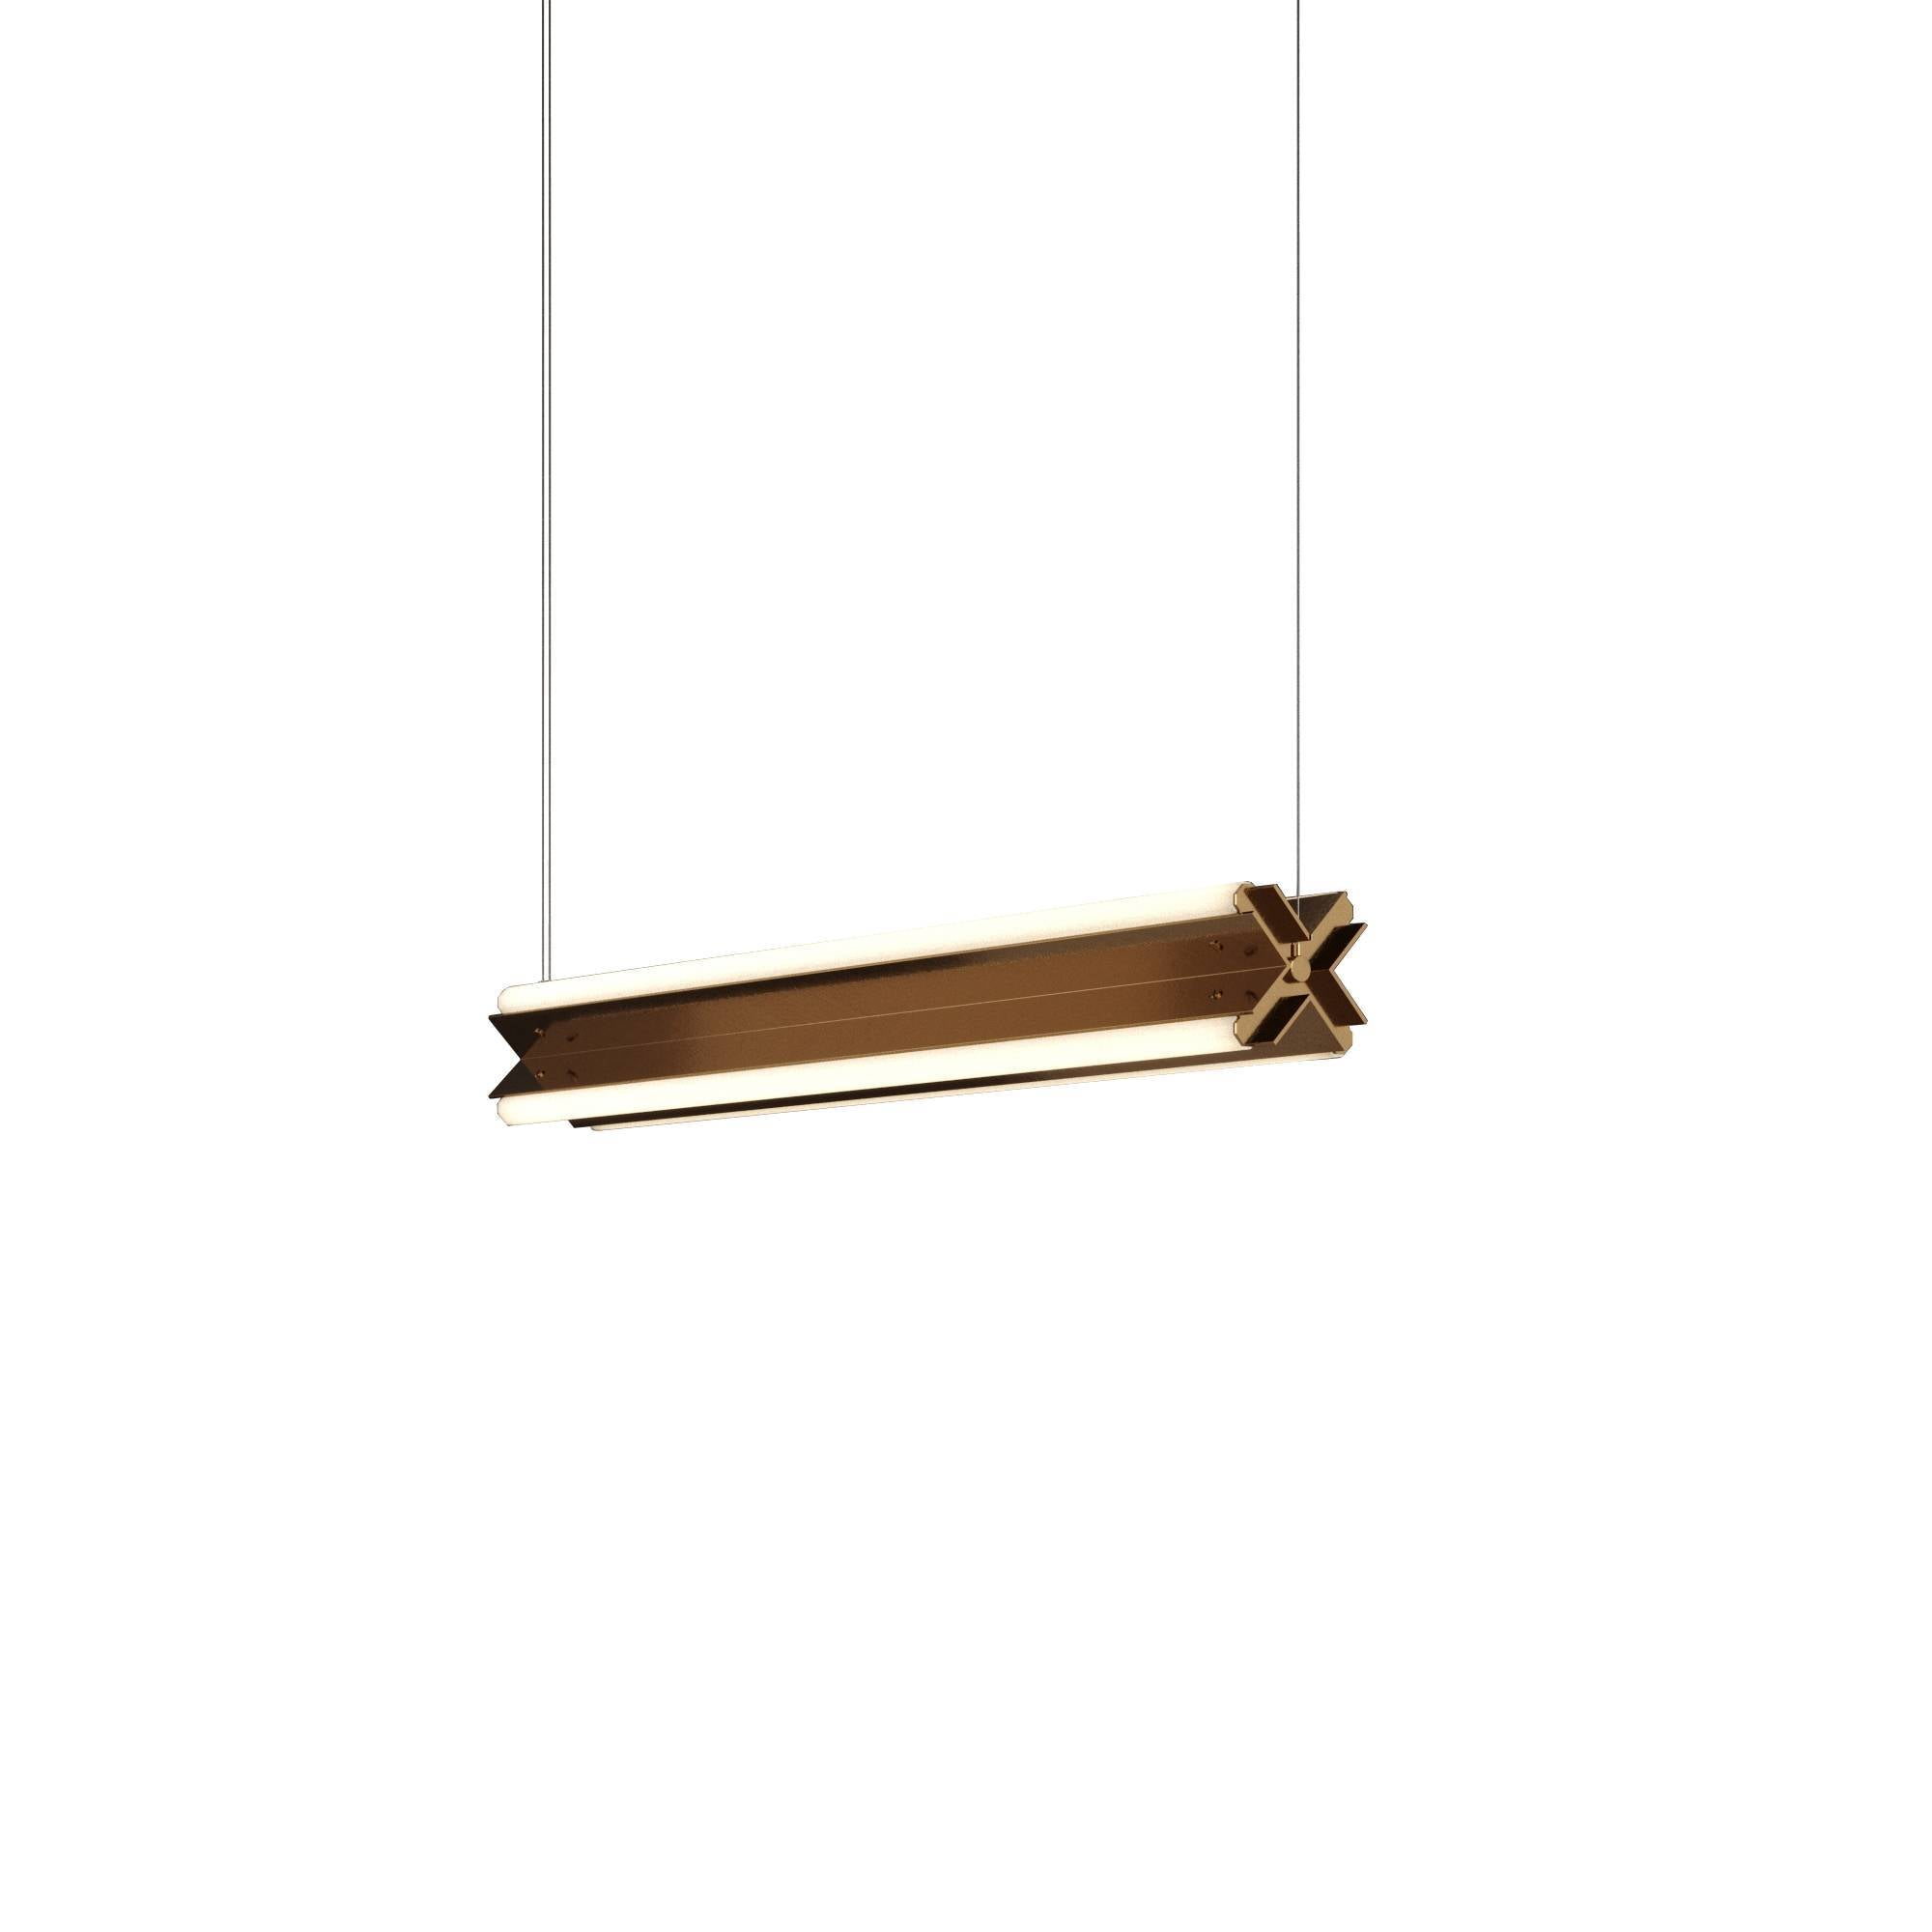 "Axis X Suspension Light: 36"" + Polished Brass + Horizontal"